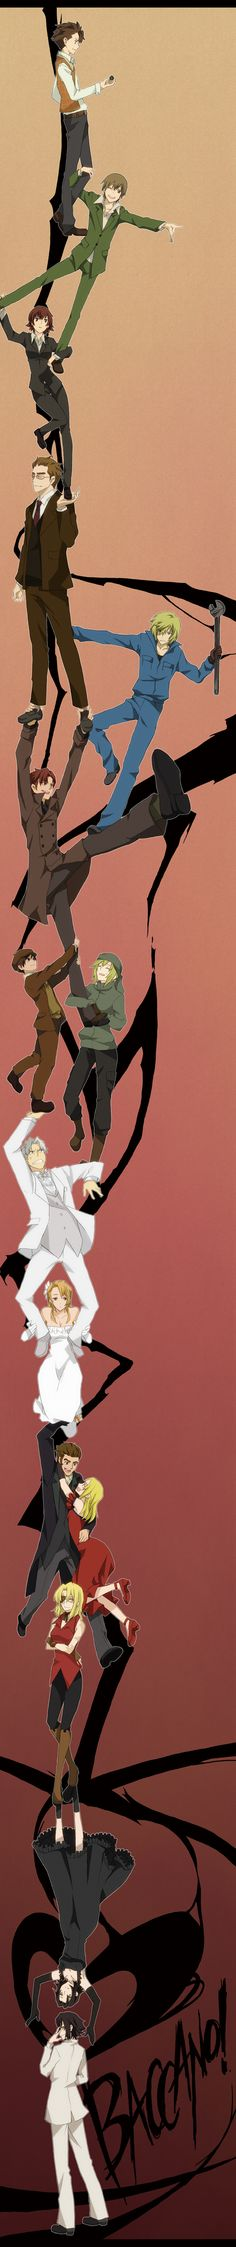 Baccano - version Durarara